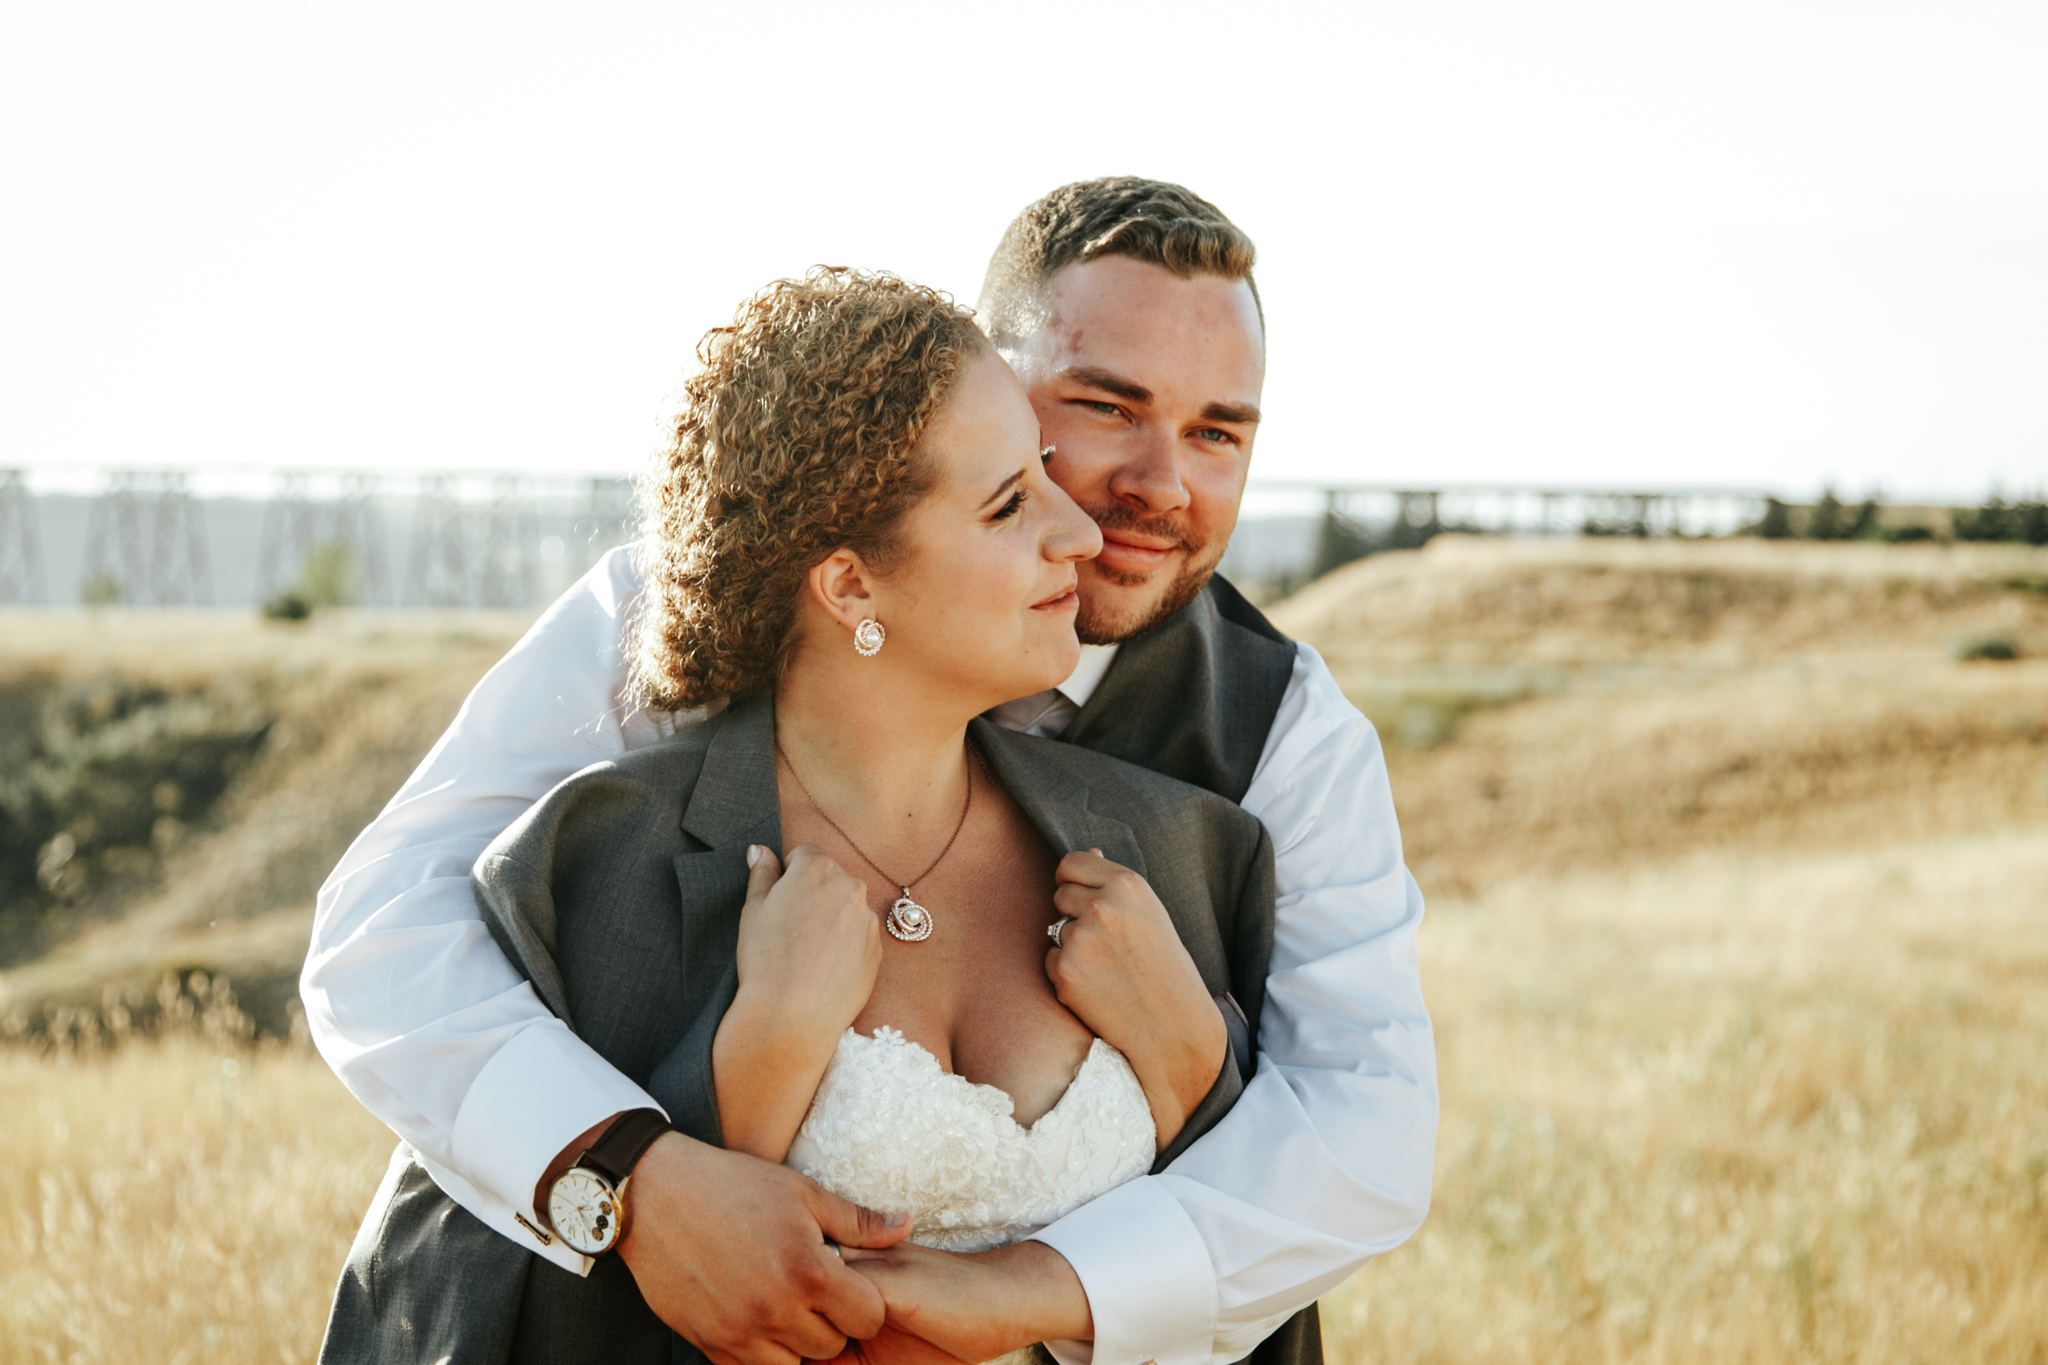 lethbridge-wedding-photographer-love-and-be-loved-photography-trent-danielle-galt-reception-picture-image-photo-198.jpg